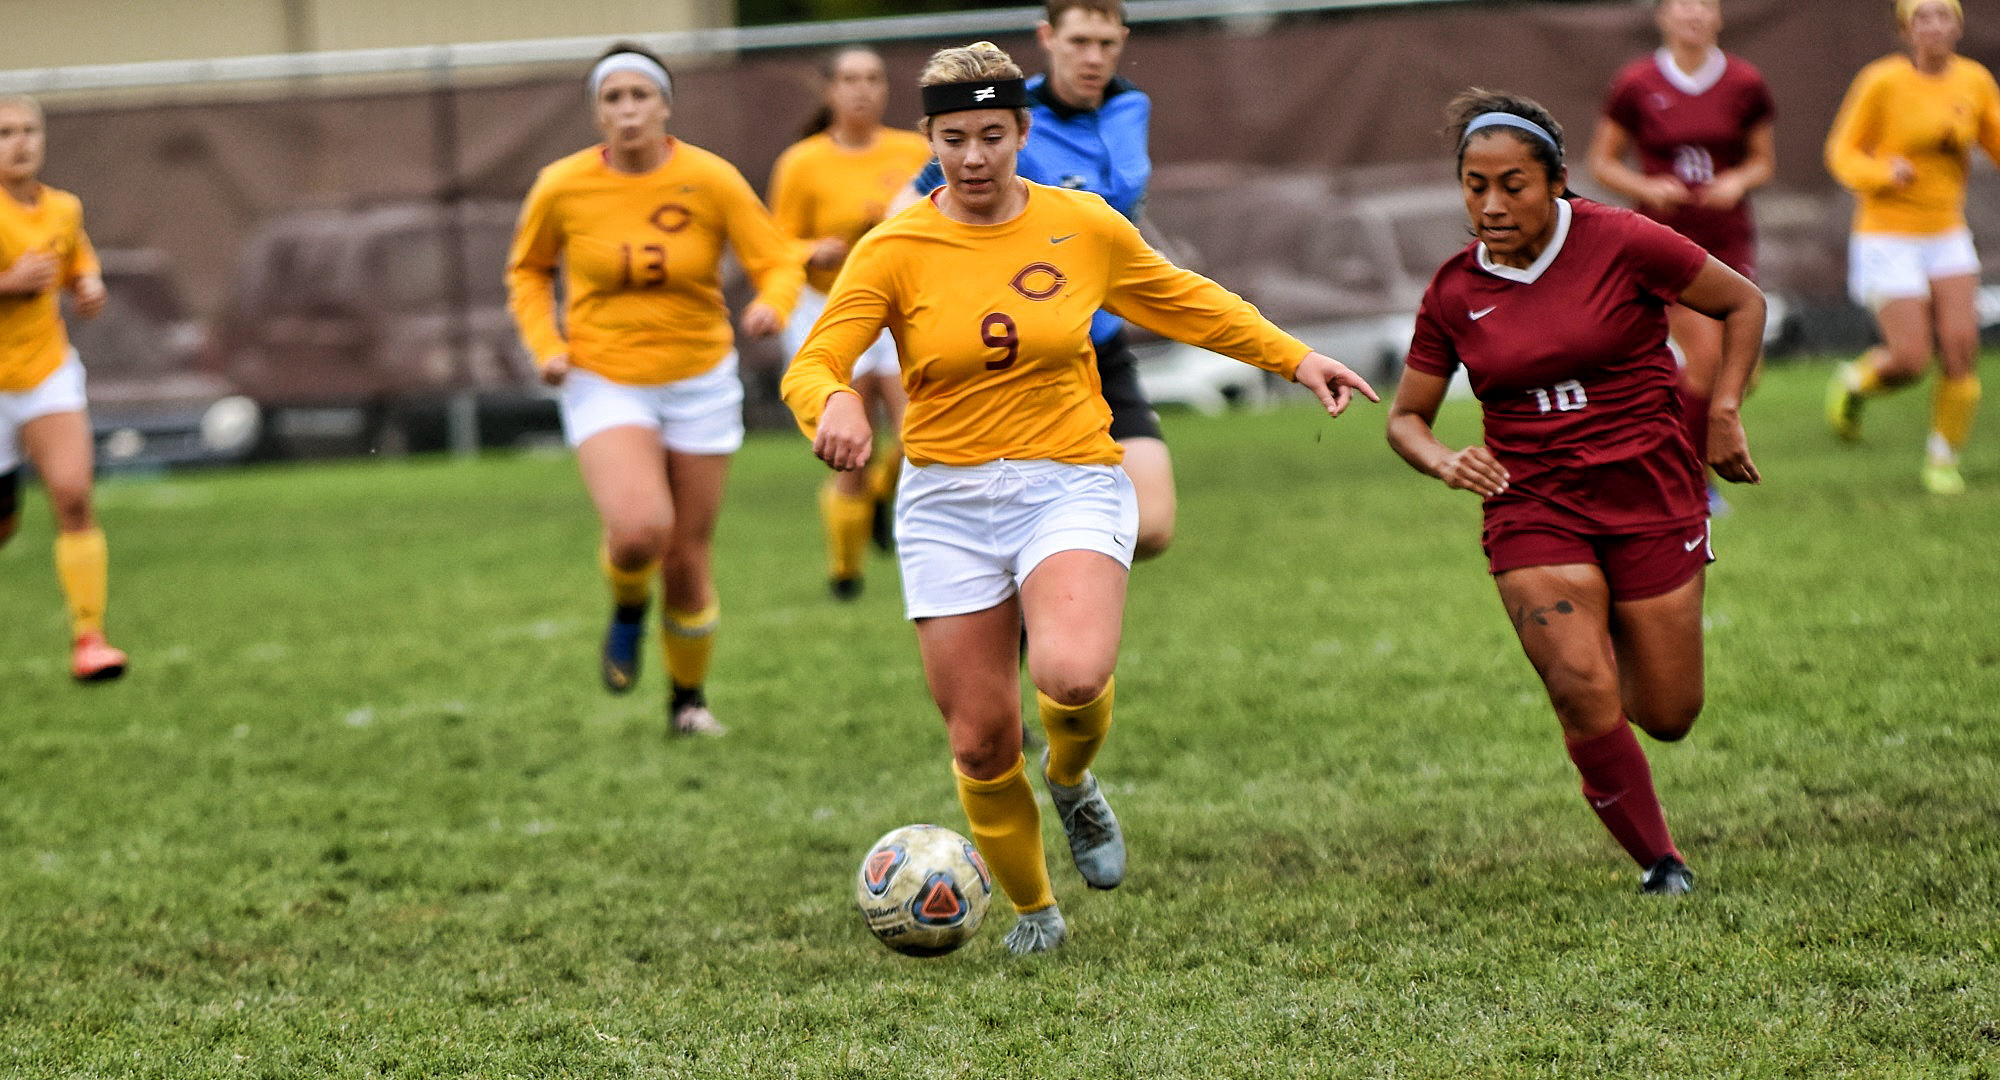 Freshman Grace Lawlor scored the game-winning goal in the Cobbers' win over Gustavus.